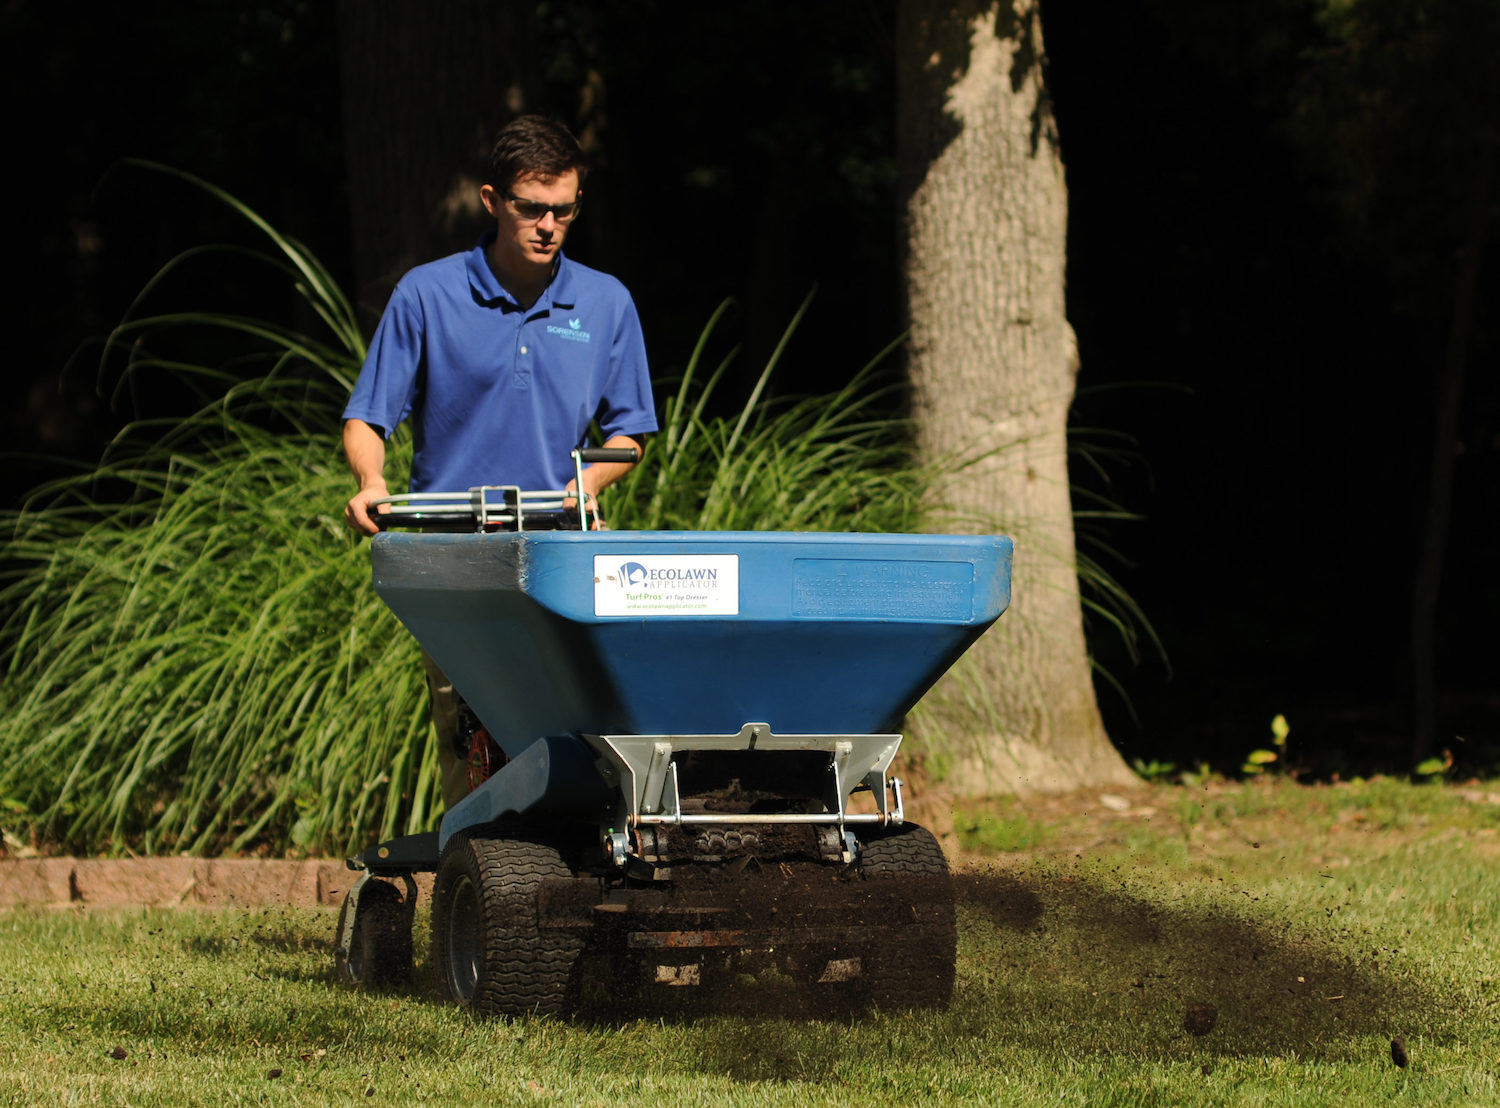 Aerate, compost and seed for lush lawn